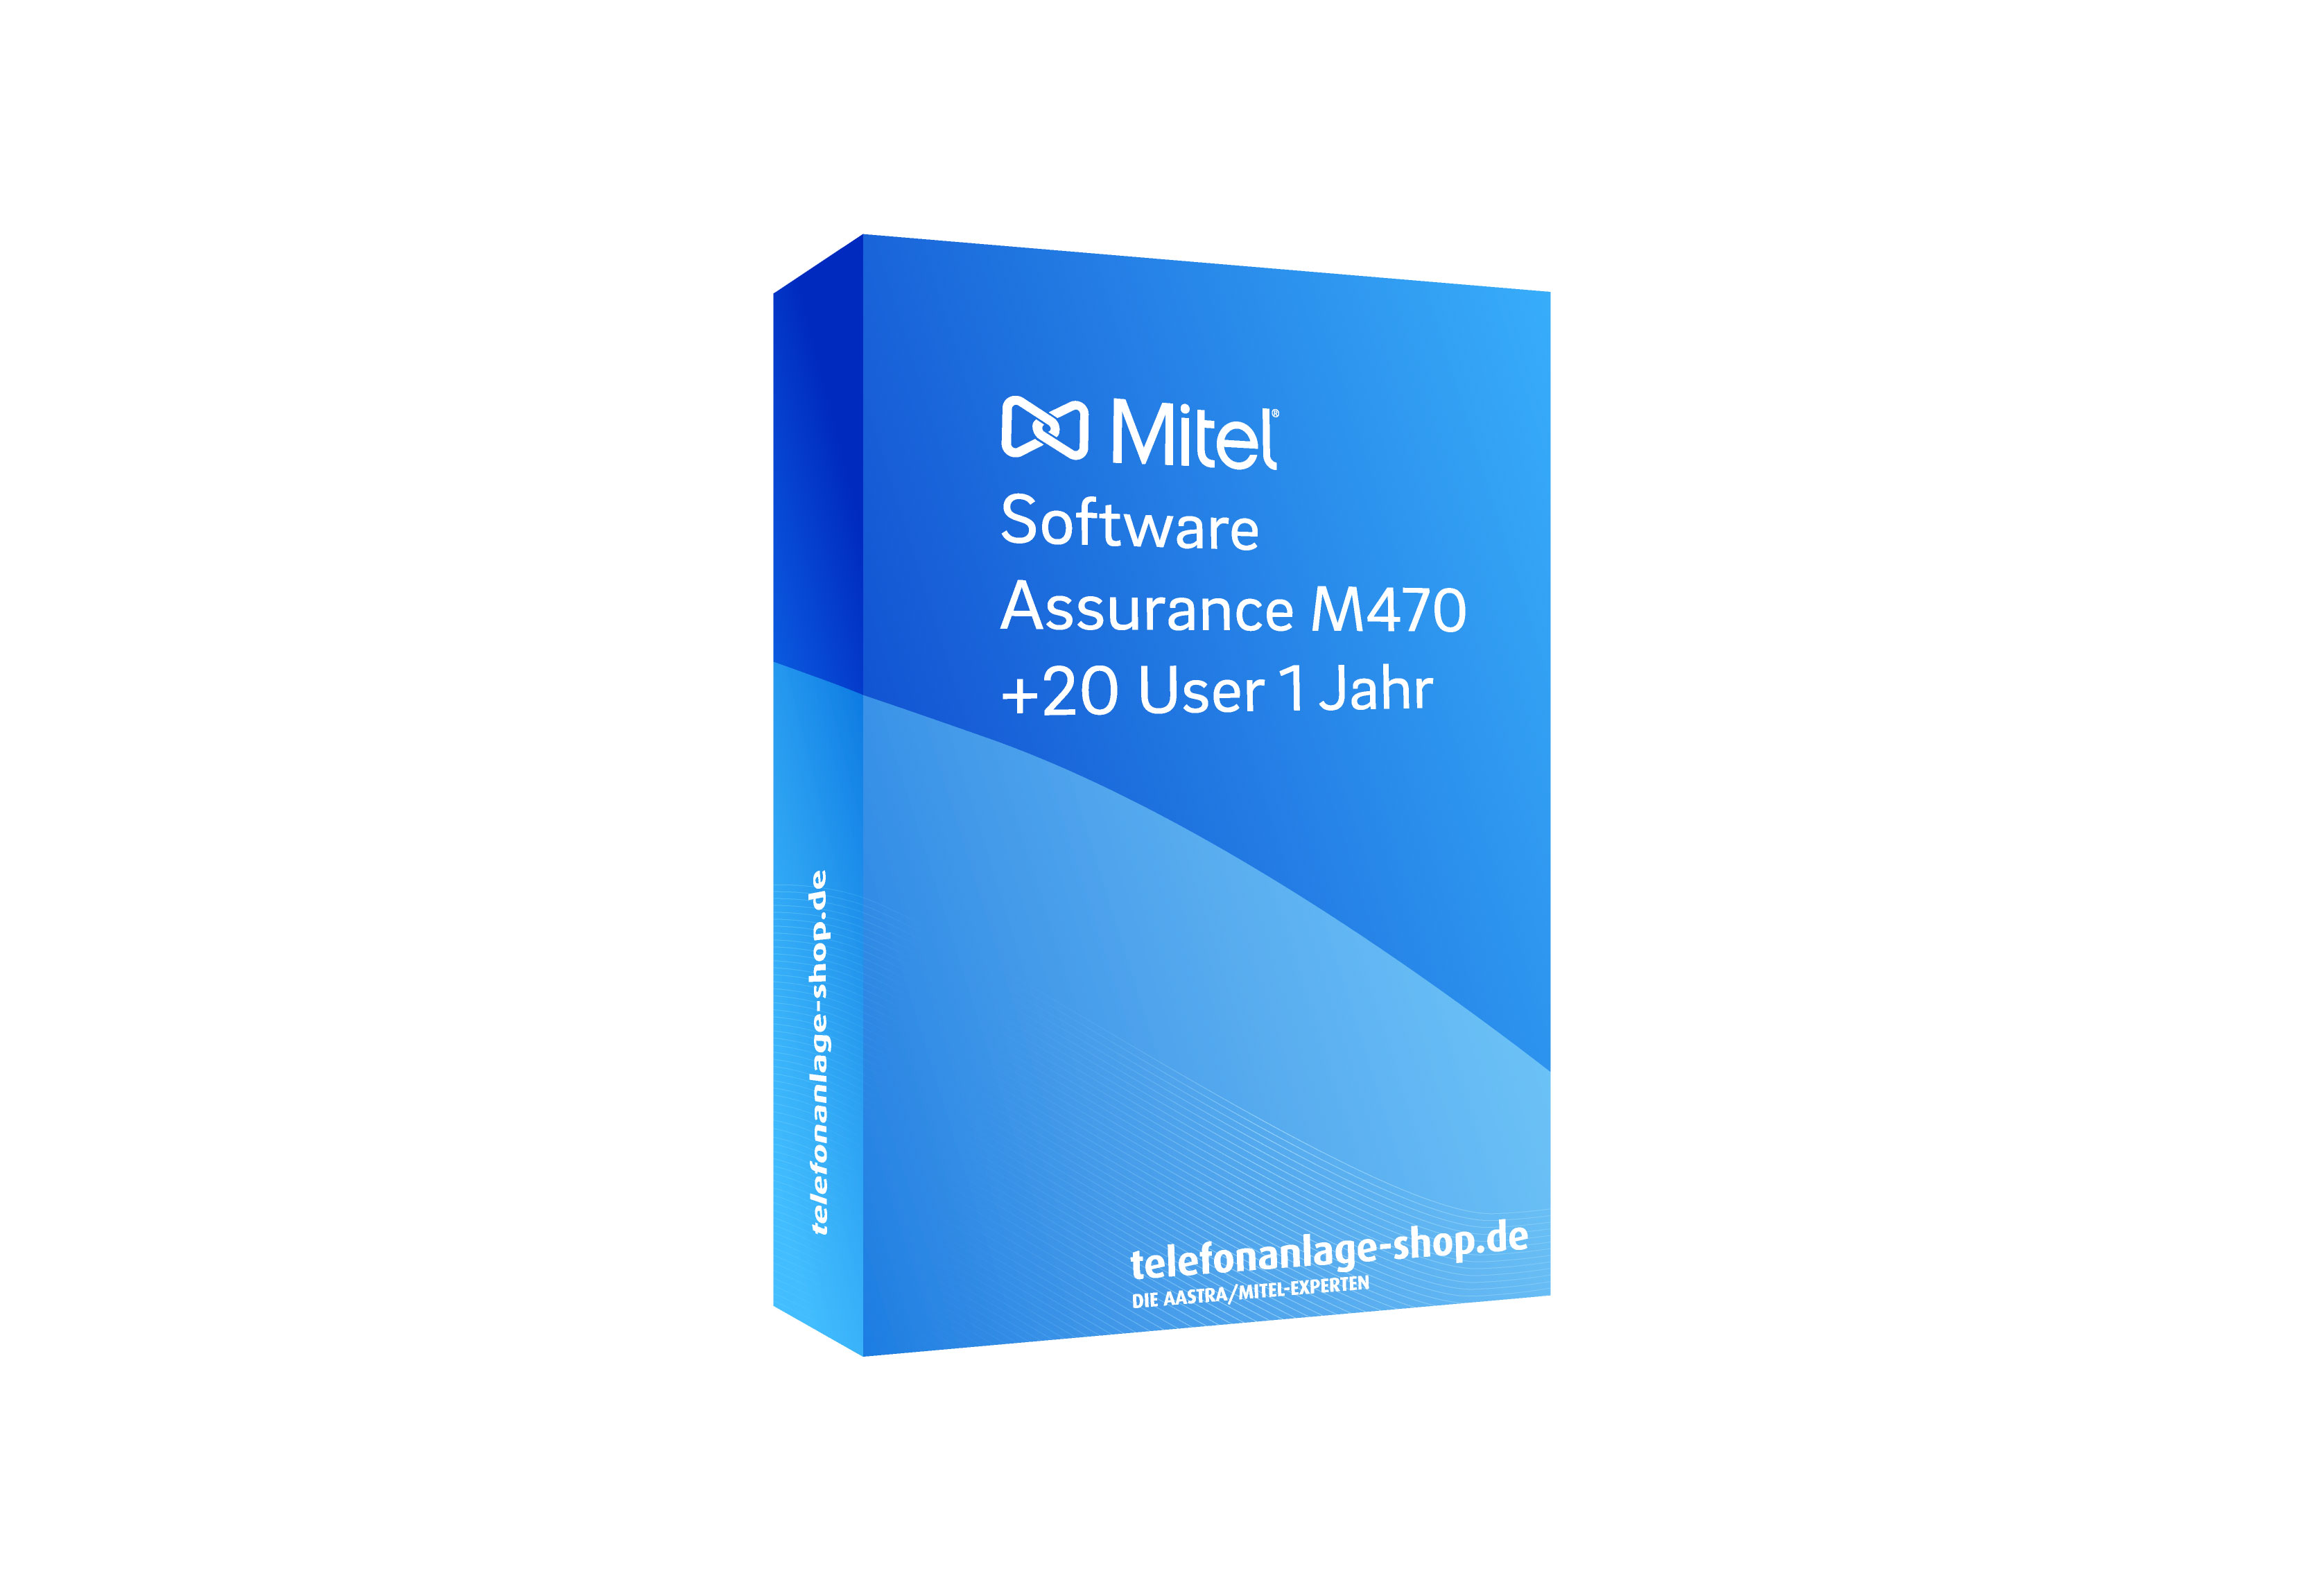 Produktbild - Mitel Software Assurance M470 +20 User 1Jahr